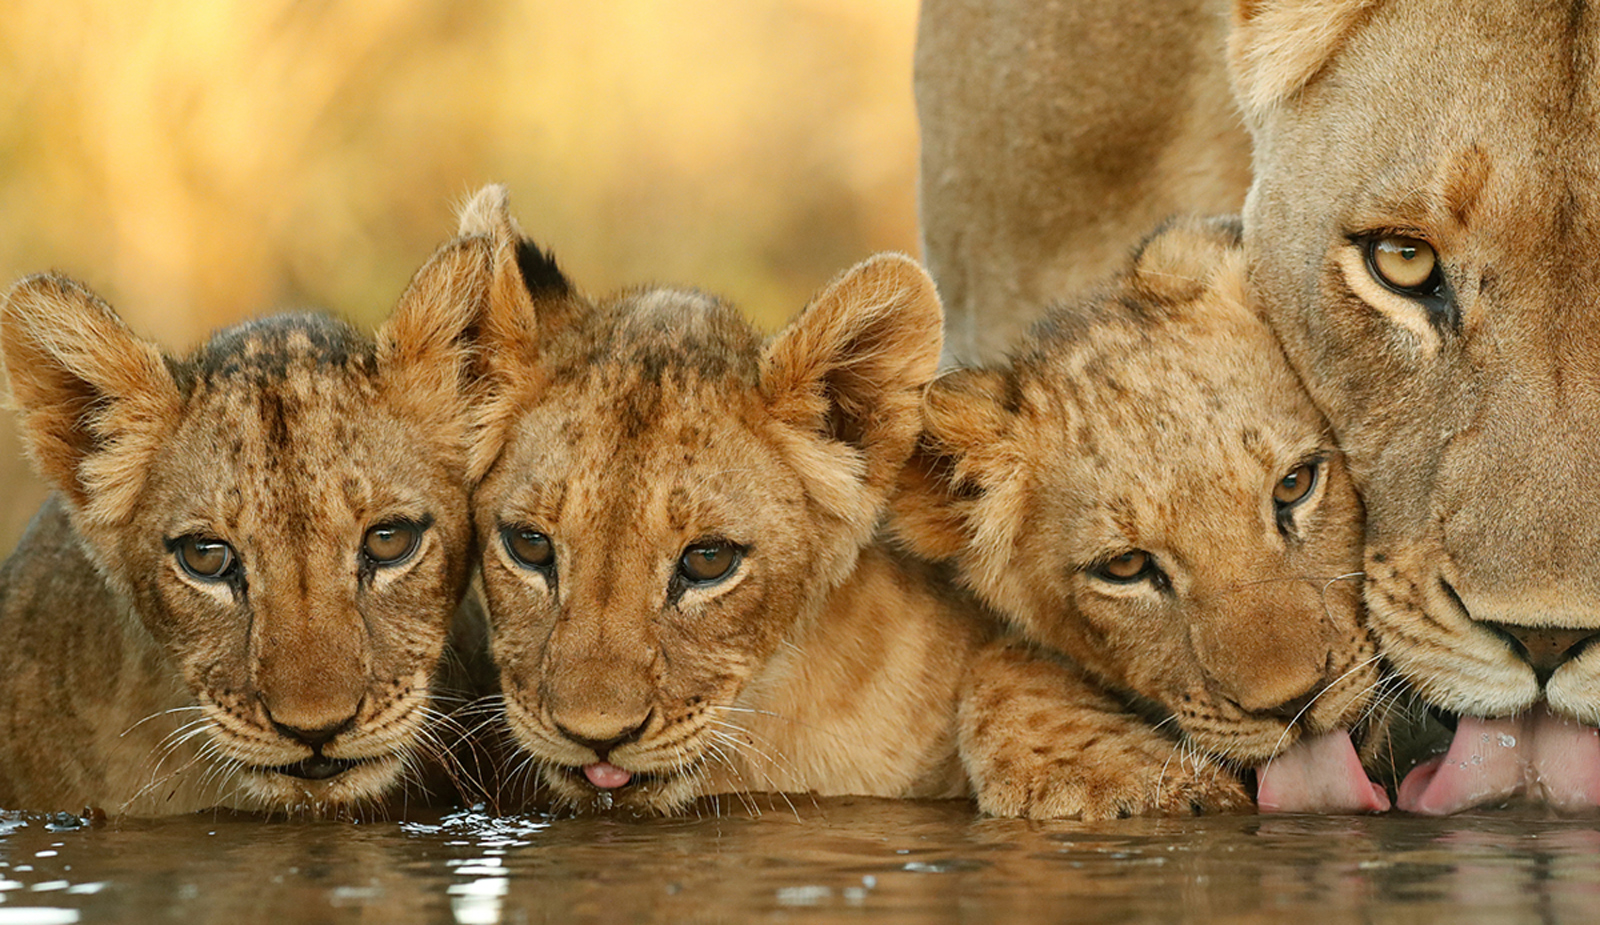 A lioness and her cubs drinking